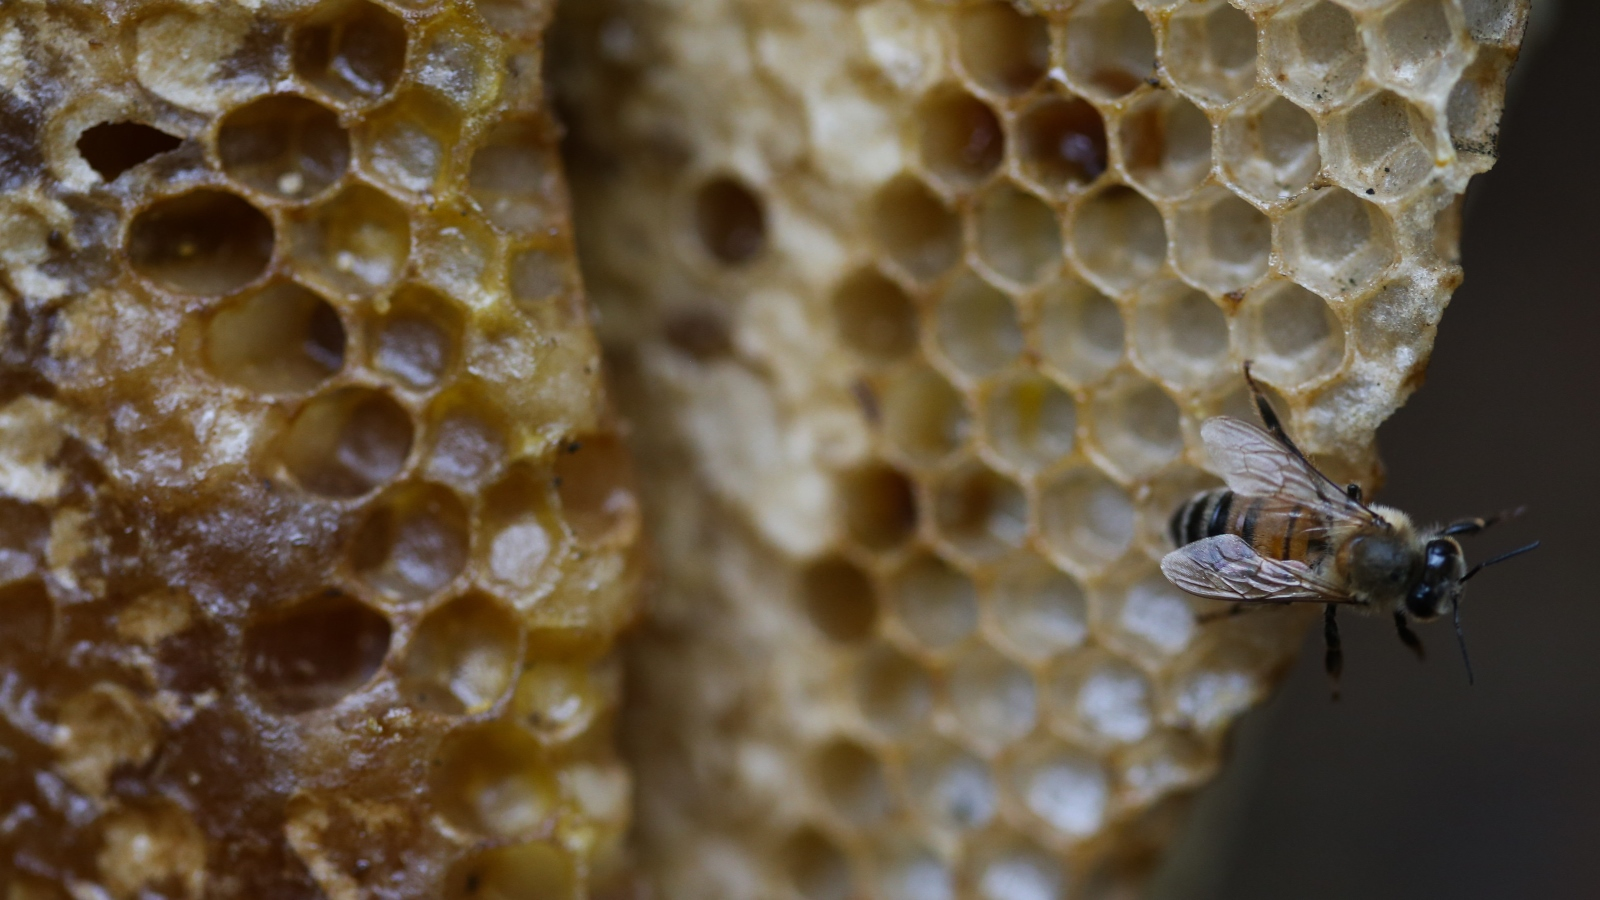 The Israeli startup getting a buzz out of saving honeybees